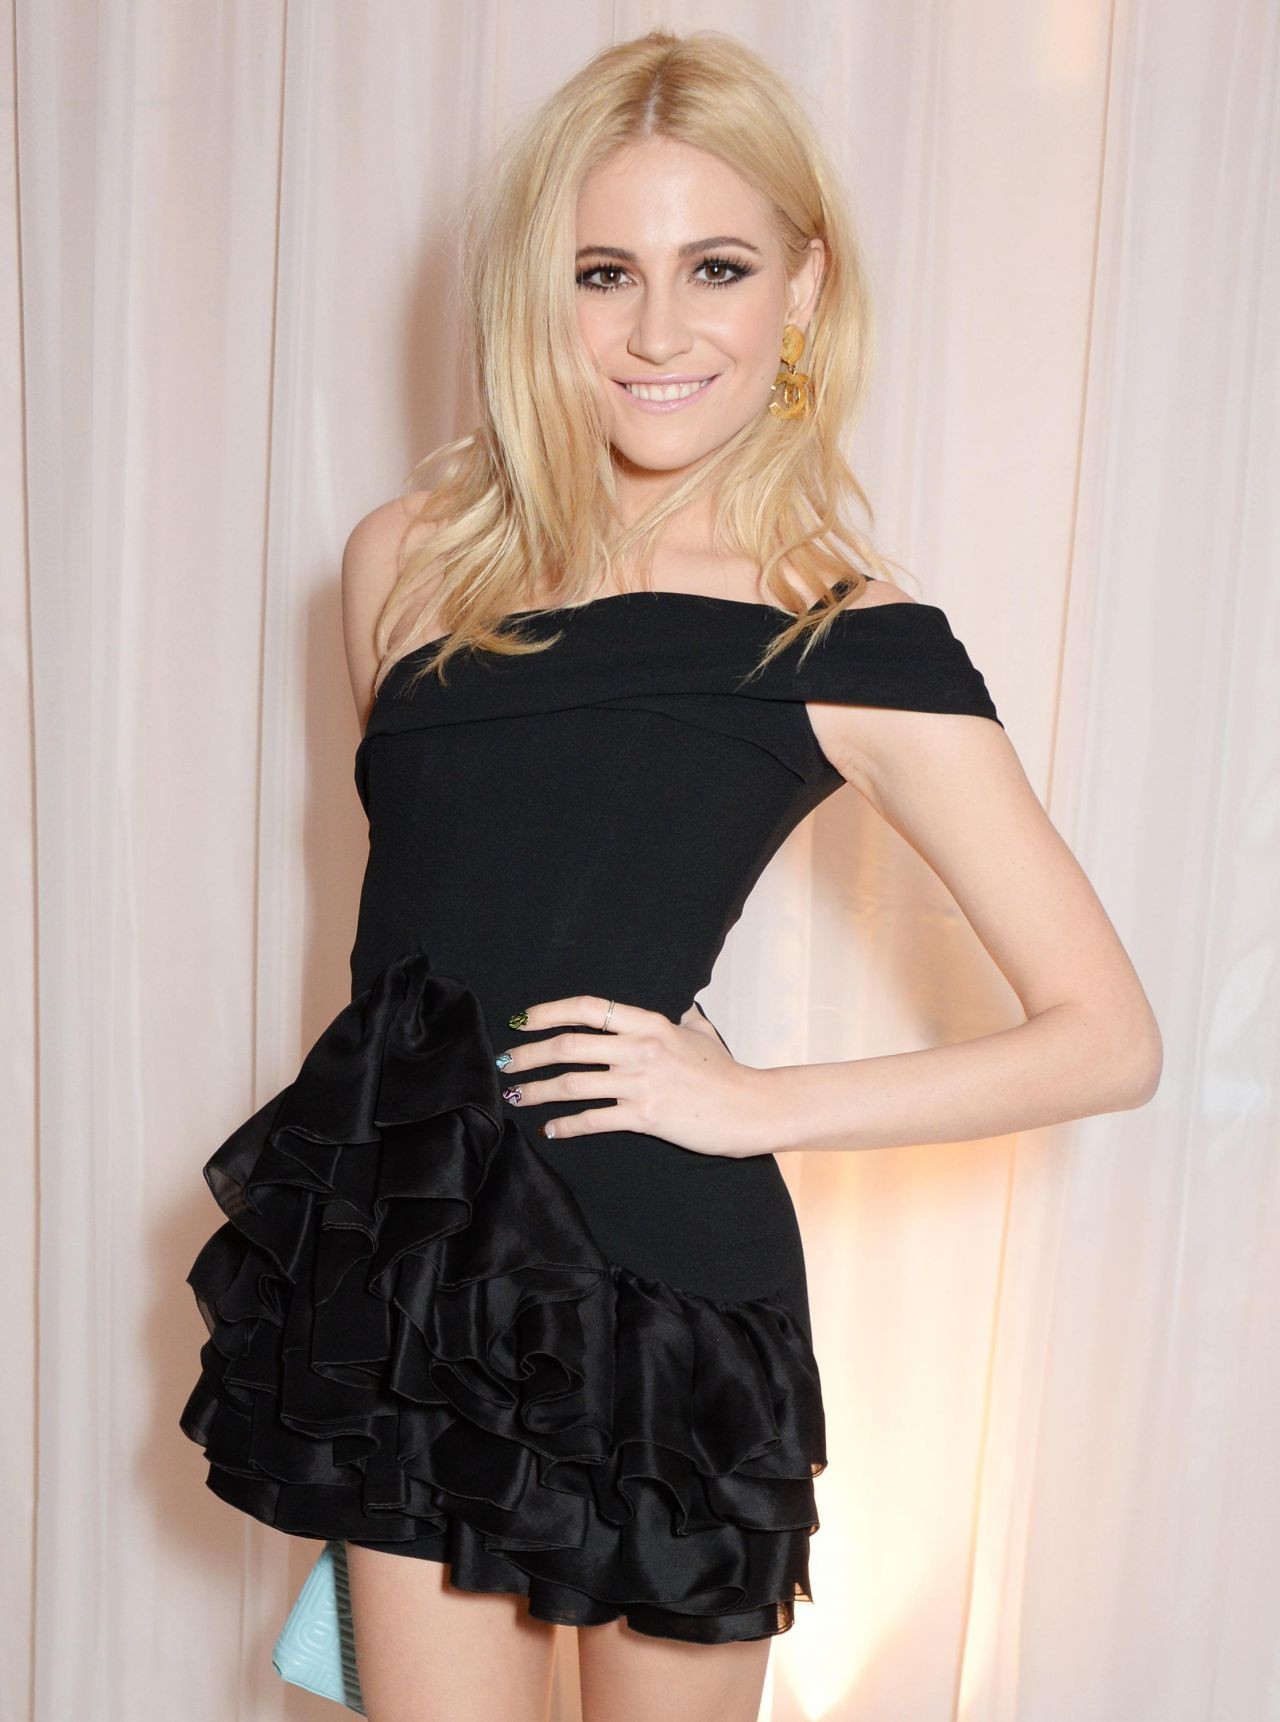 pixie-lott-showing-hot-ass